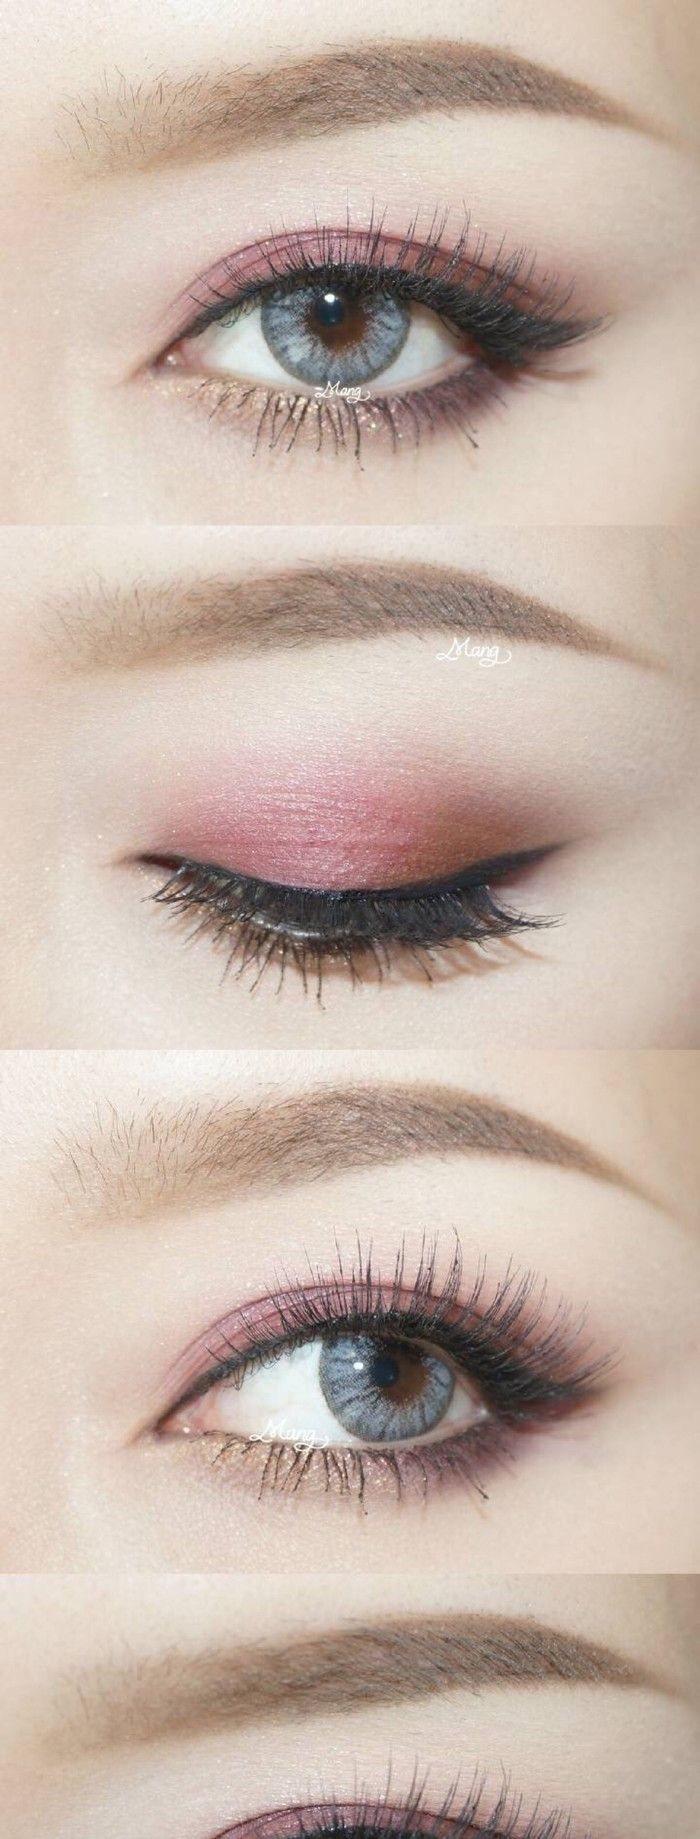 eye make up http://amzn.to/2u16a6j